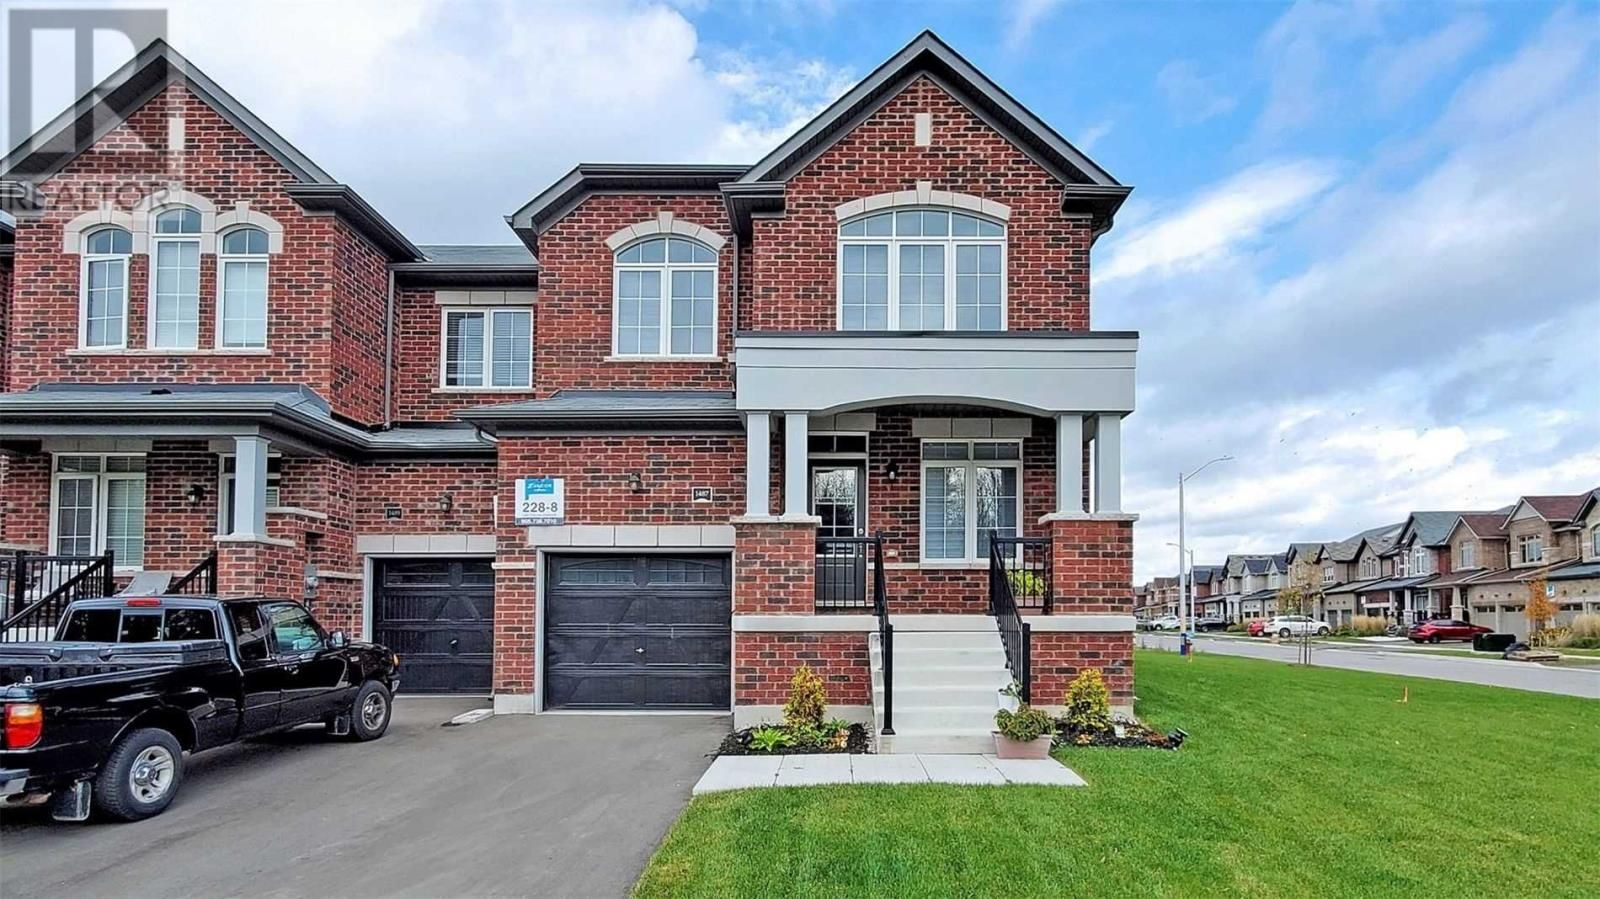 Main Photo: 1487 FARROW CRES in Innisfil: House for rent : MLS®# N5318352